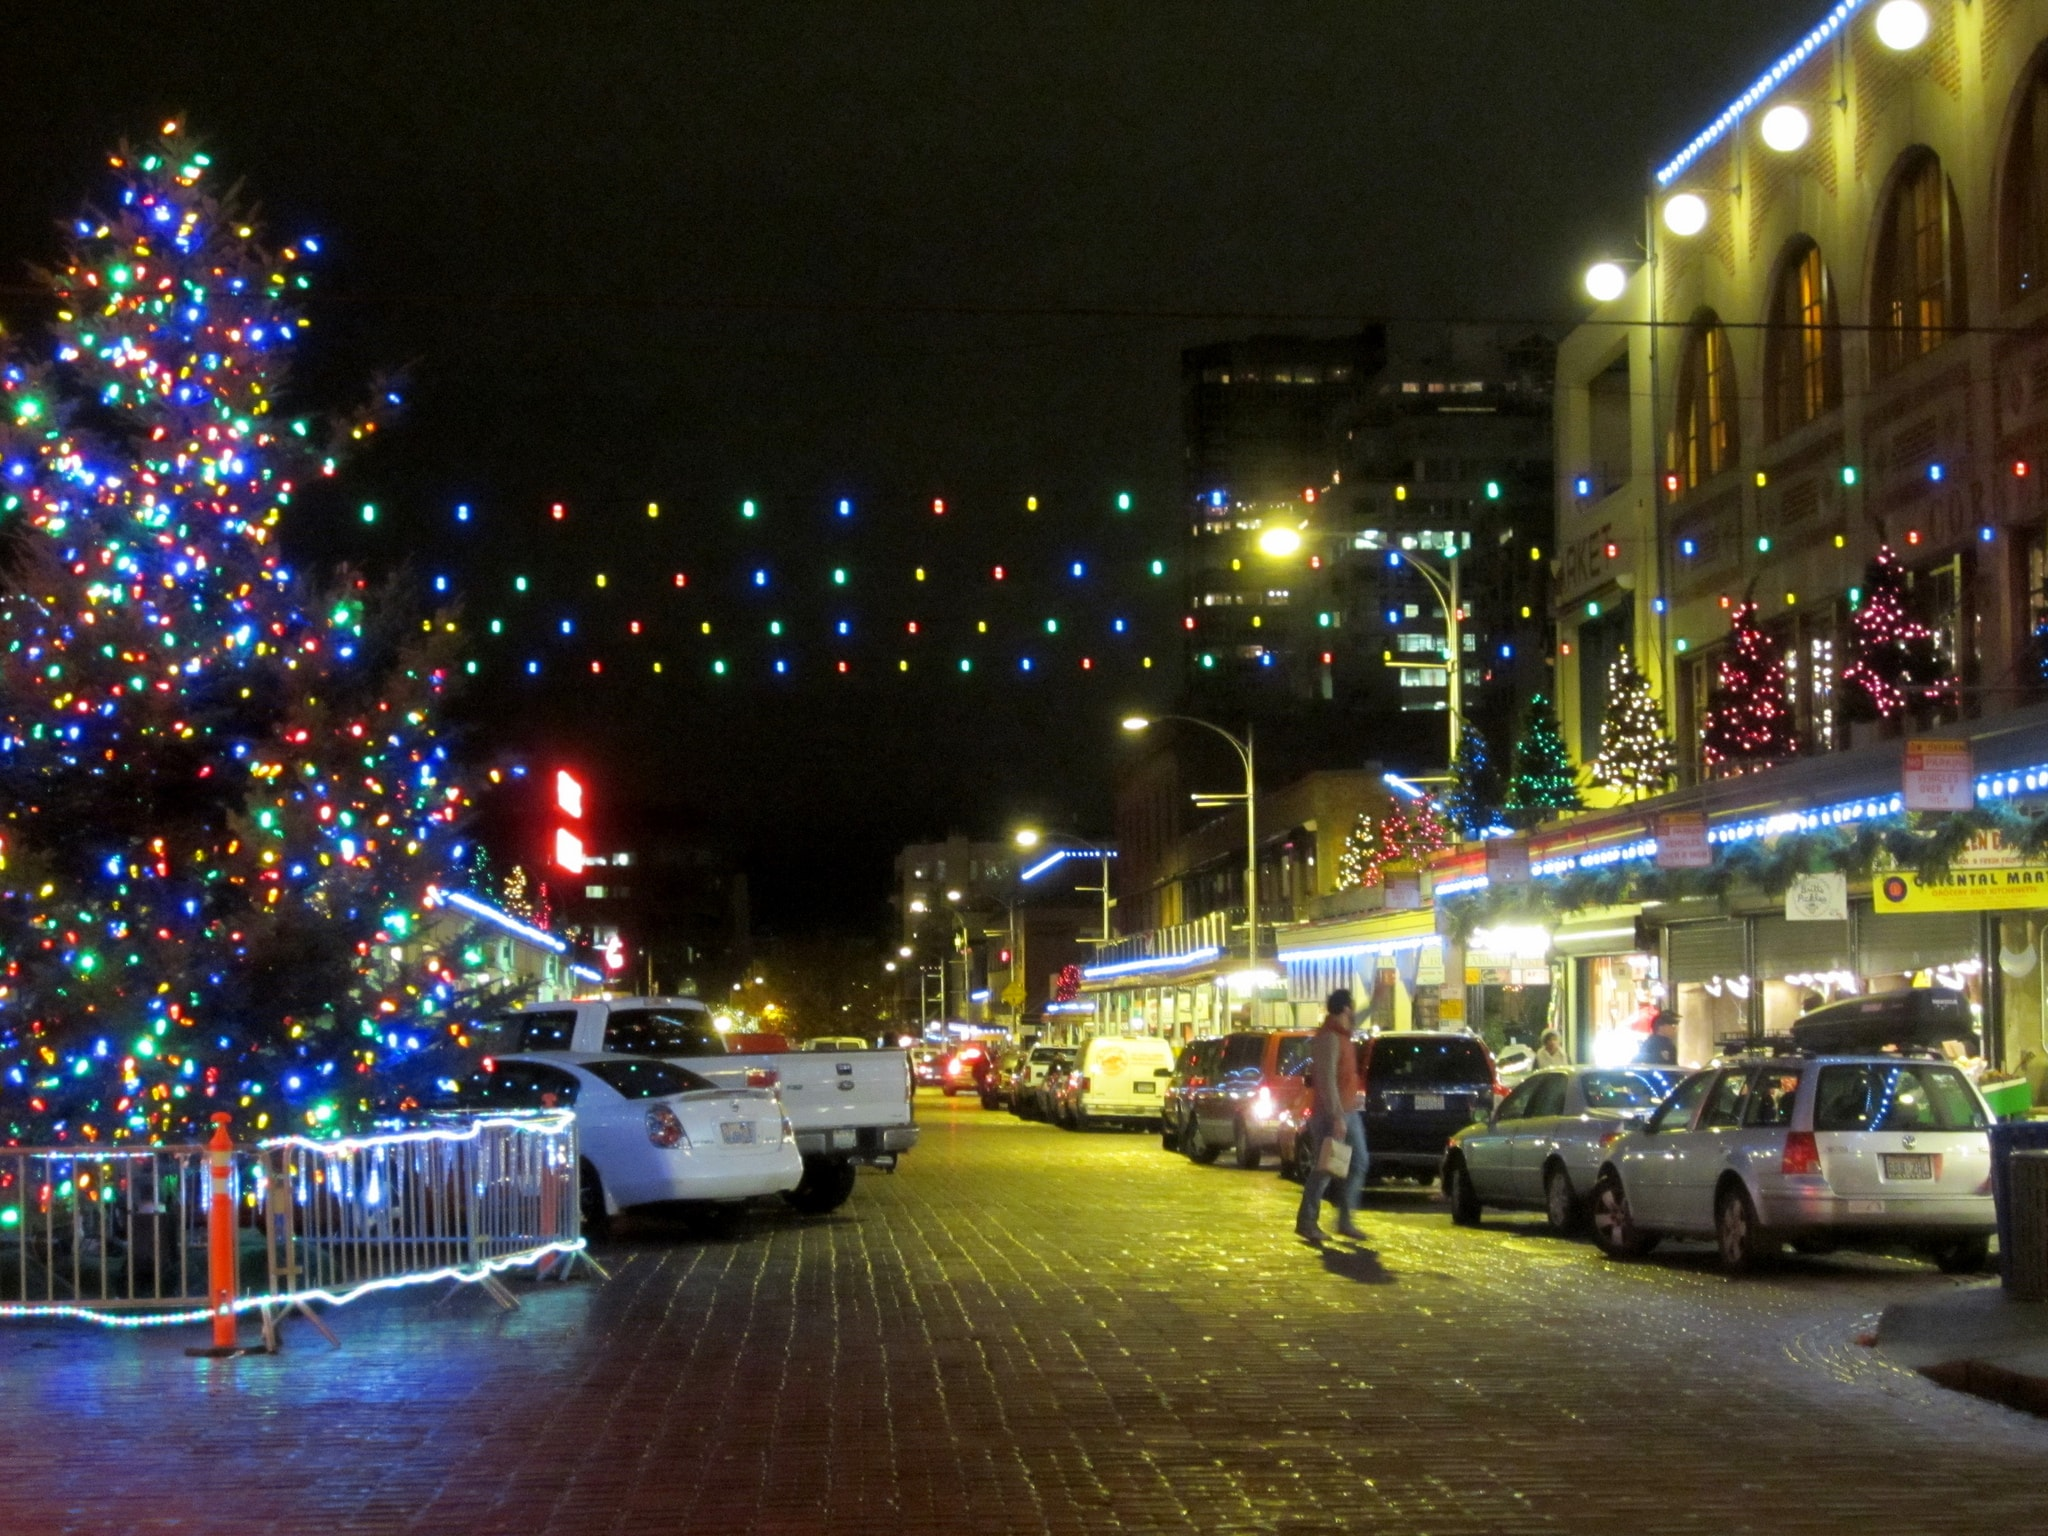 10 things to do in seattle this christmas - Christmas Activities In Seattle